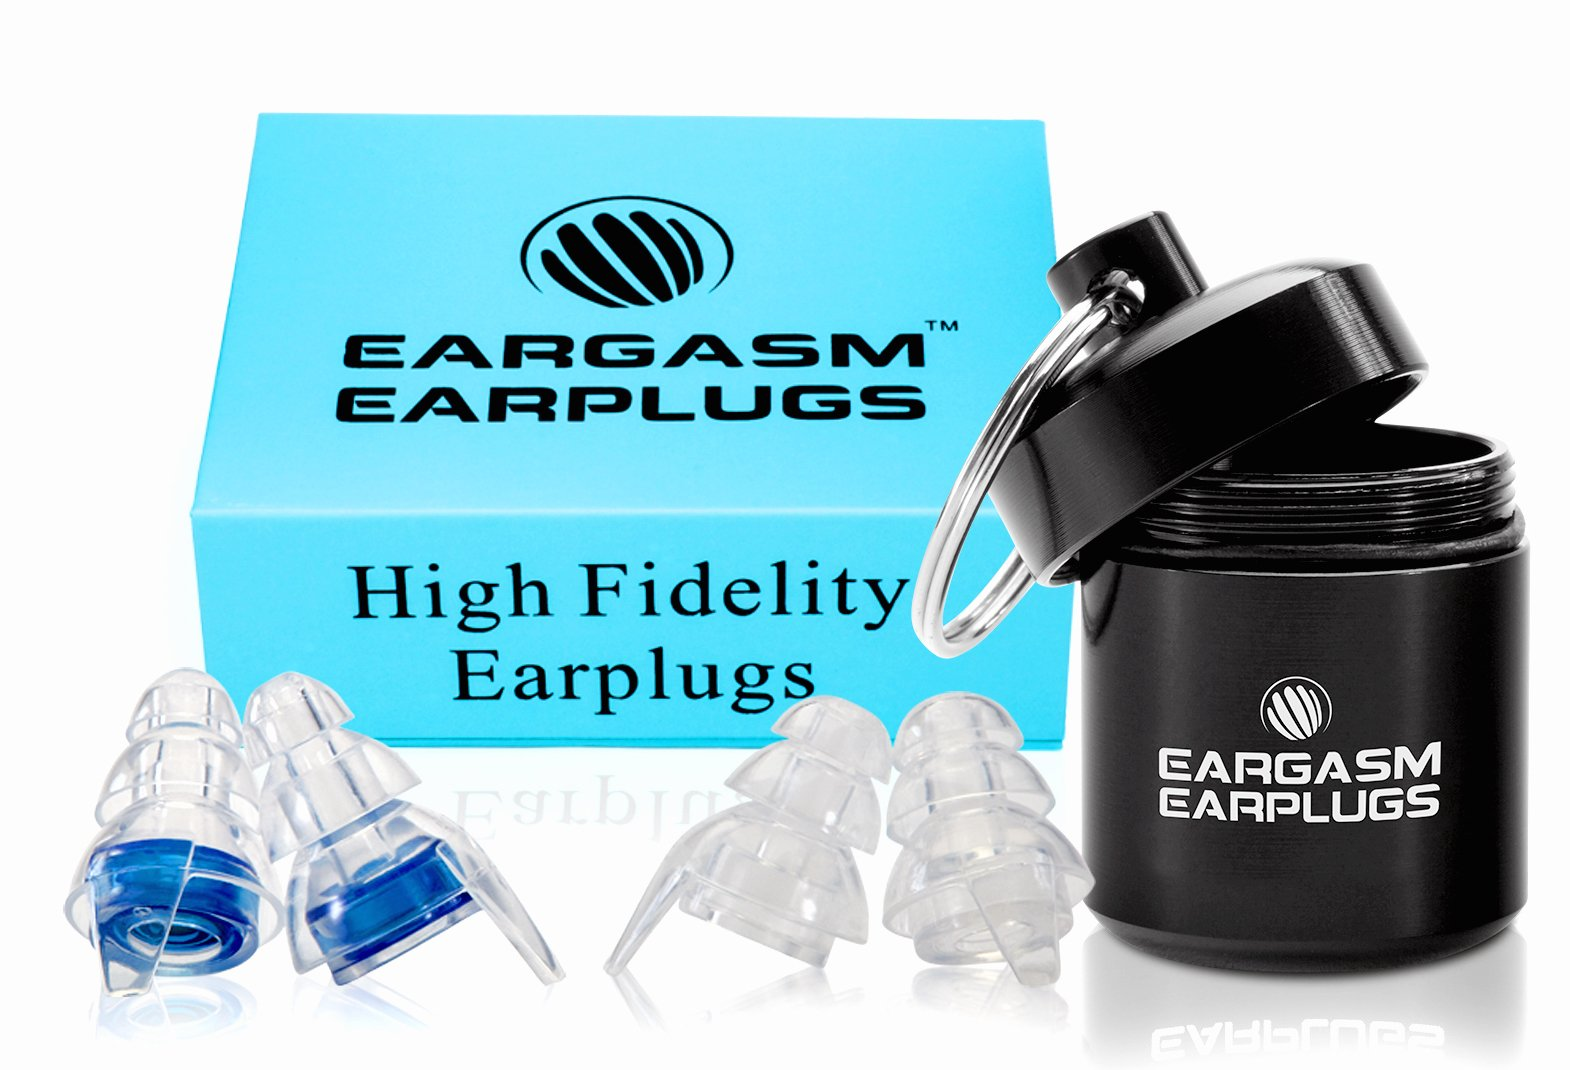 (As Featured in the New Movie Book Club) Eargasm High Fidelity Earplugs for Concerts Musicians Motorcycles Noise Sensitivity Conditions and More (Ear Plugs Come in Premium Gift Box Packaging) - Blue